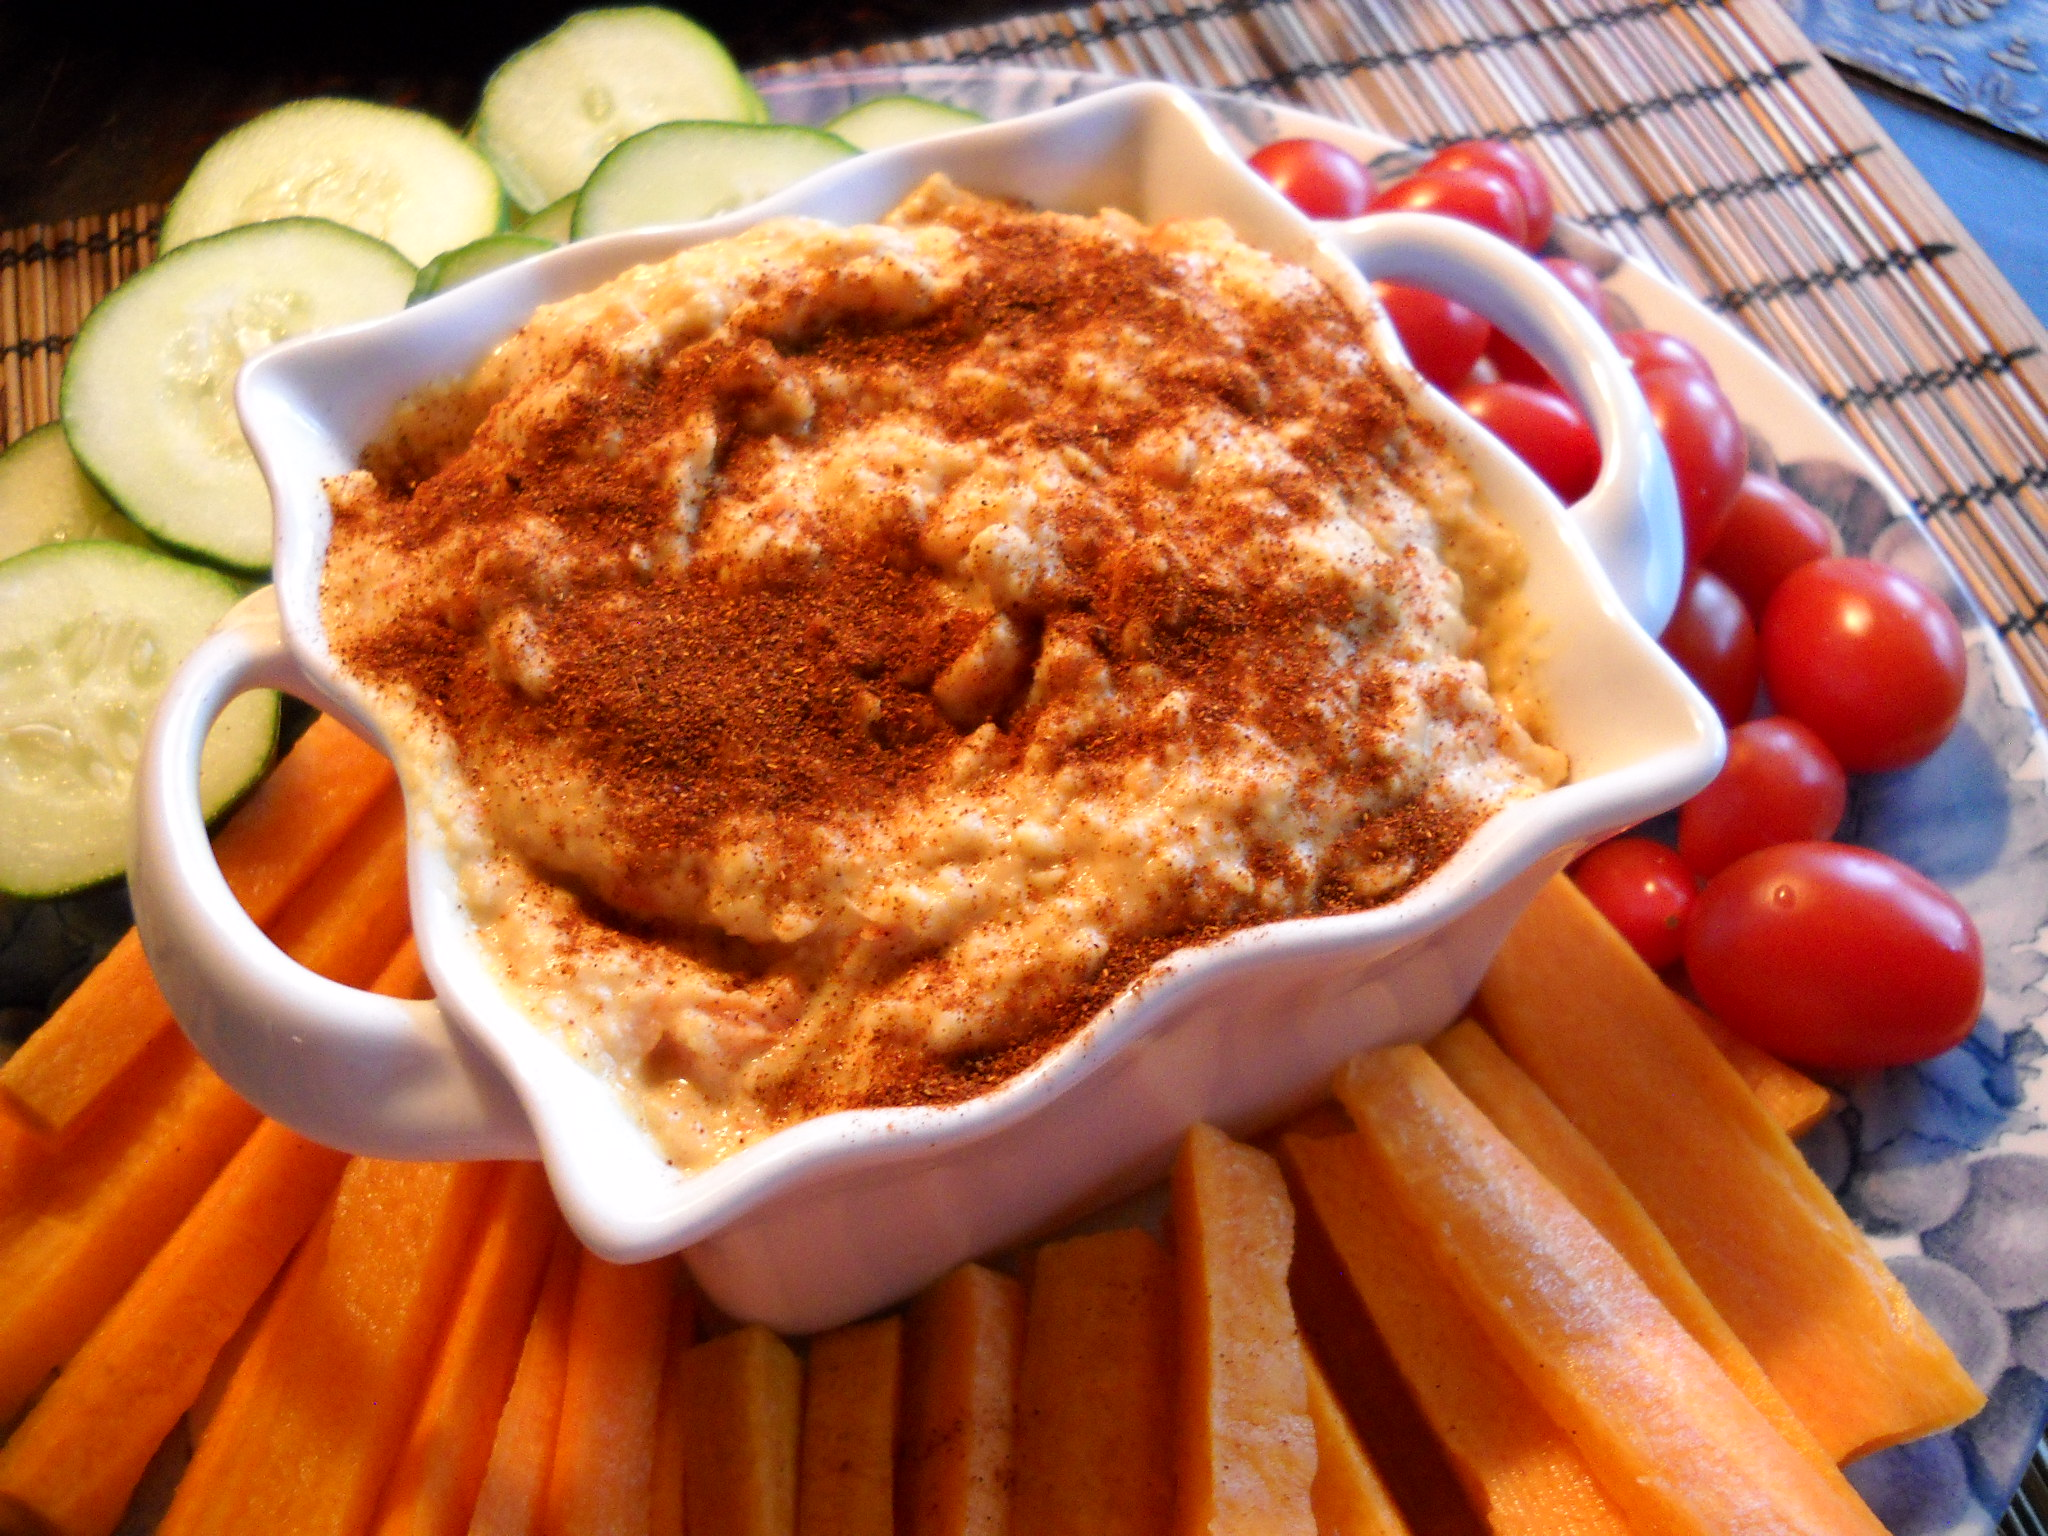 Roasted red pepper hummus harvest fare for Roasted red peppers hummus